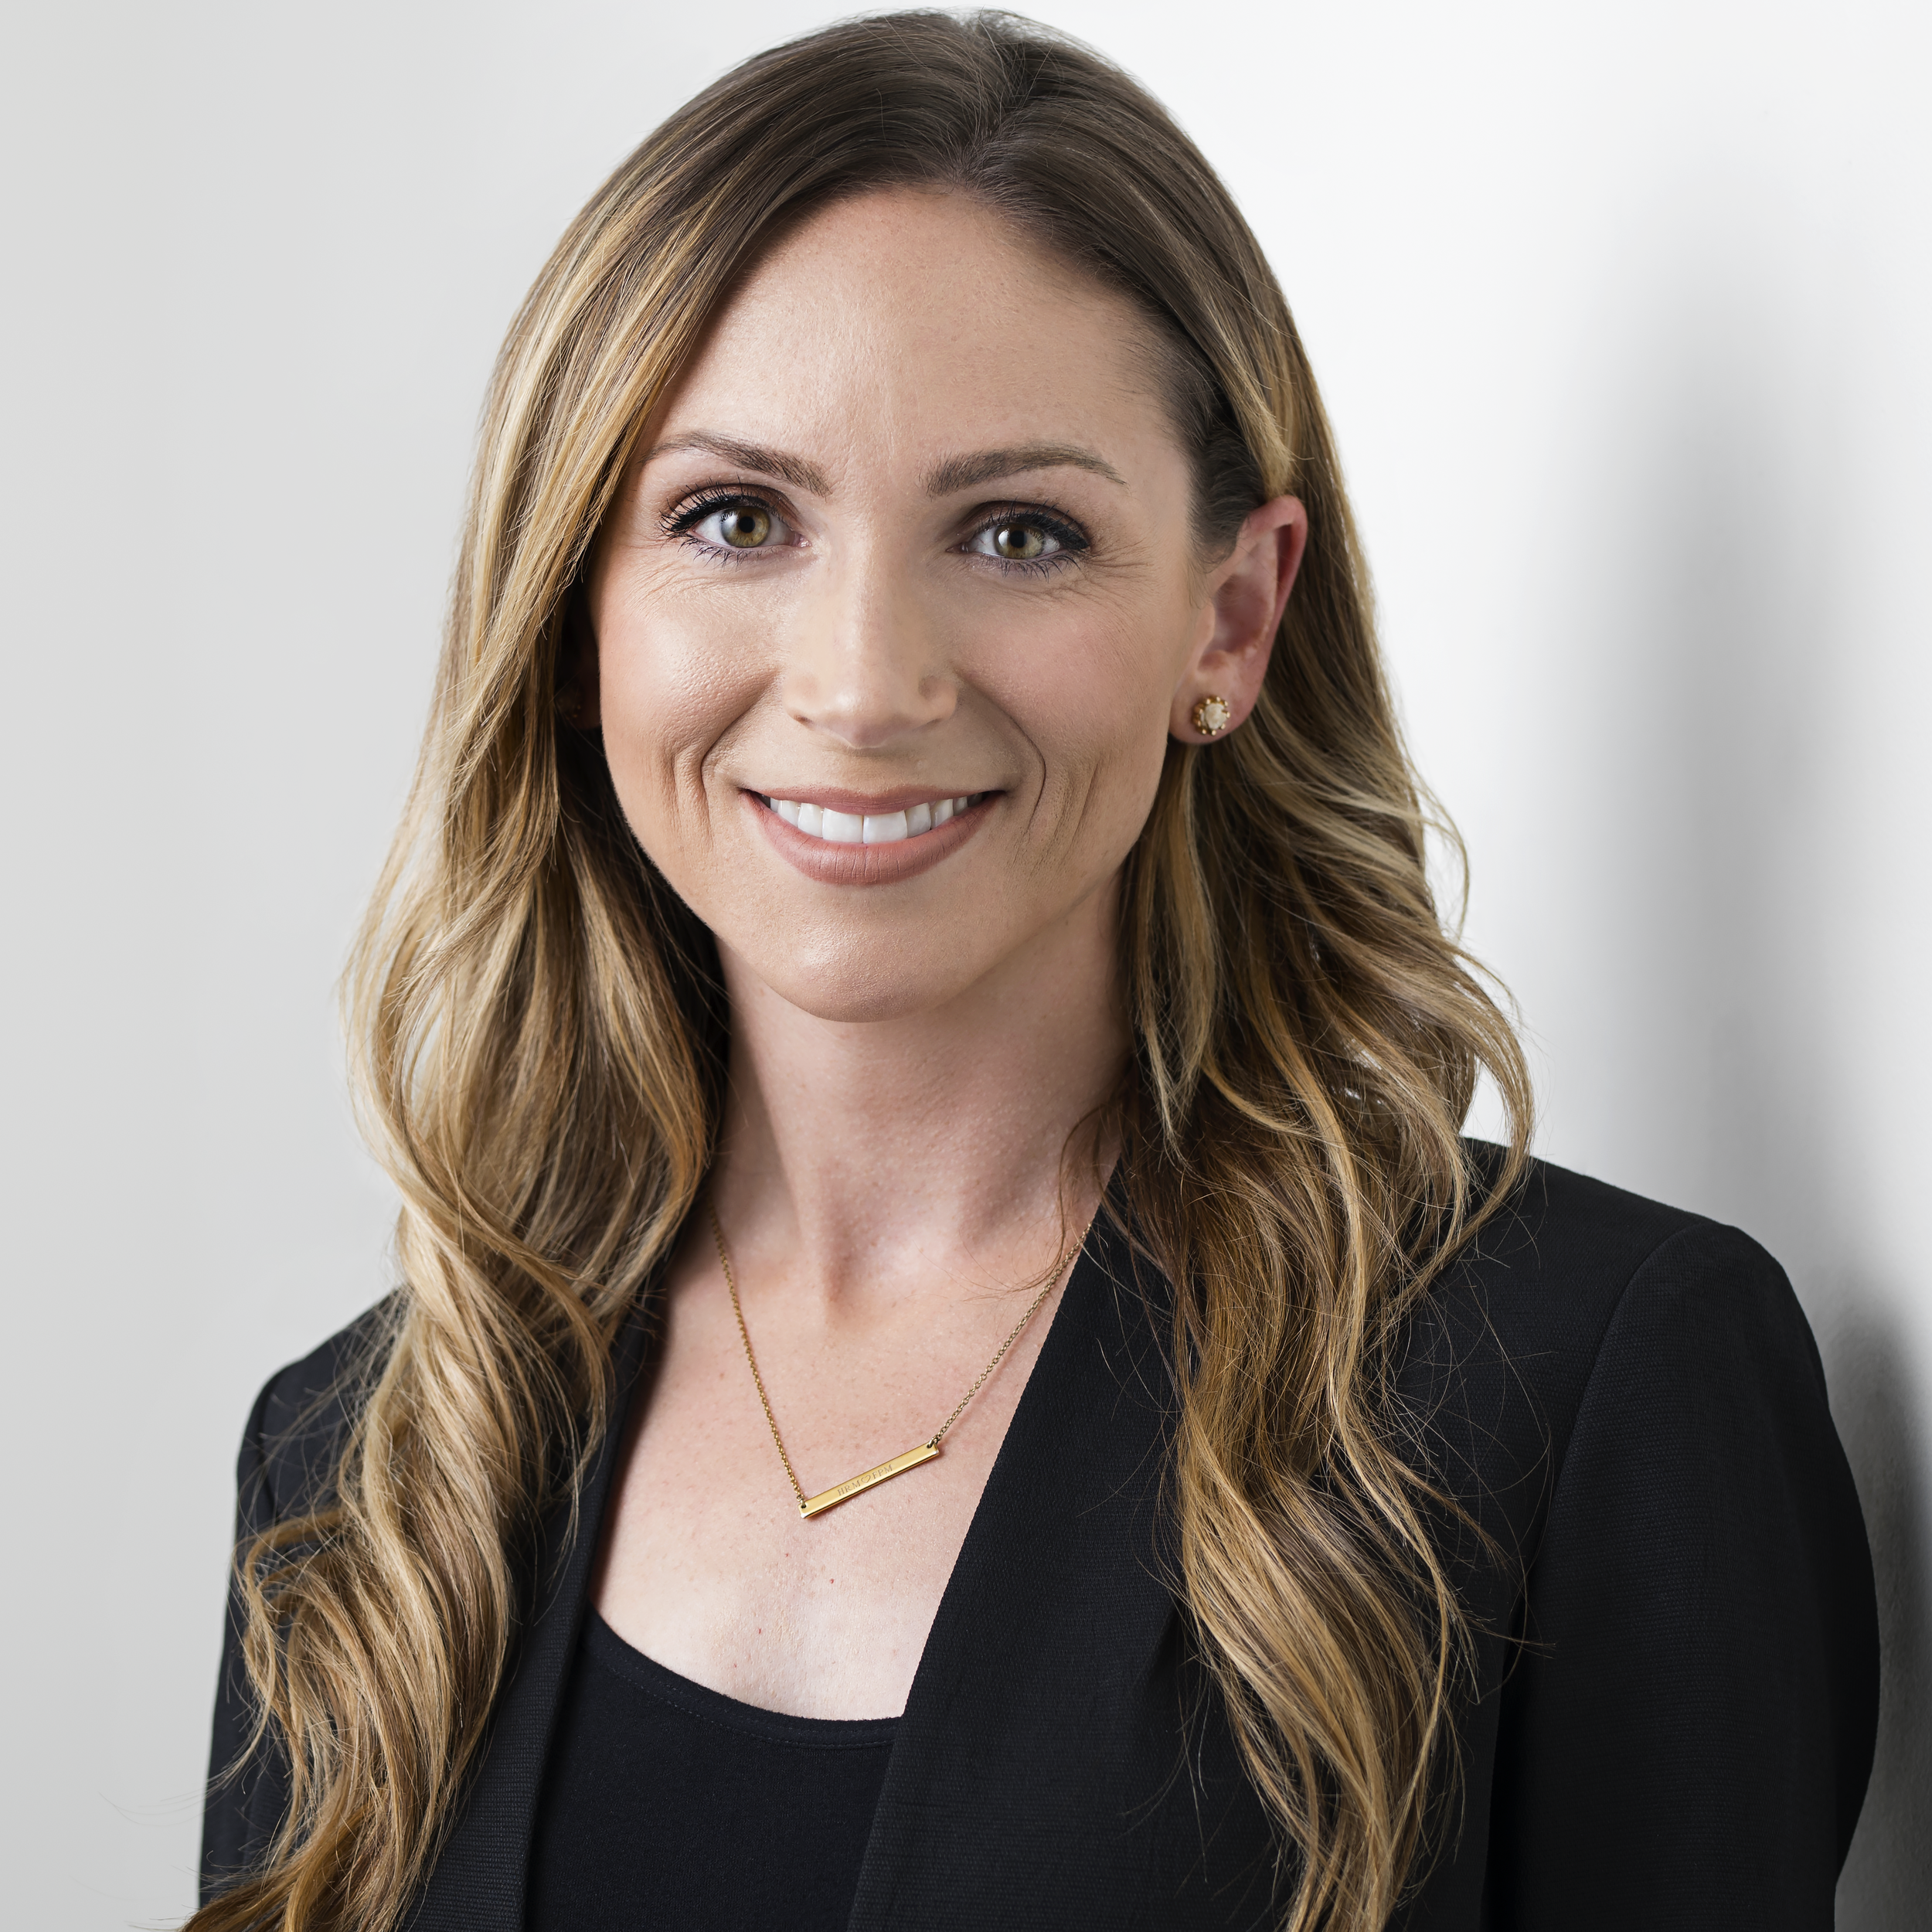 Dr. Breanne Everett, CEO & Co-Founder, Orpyx